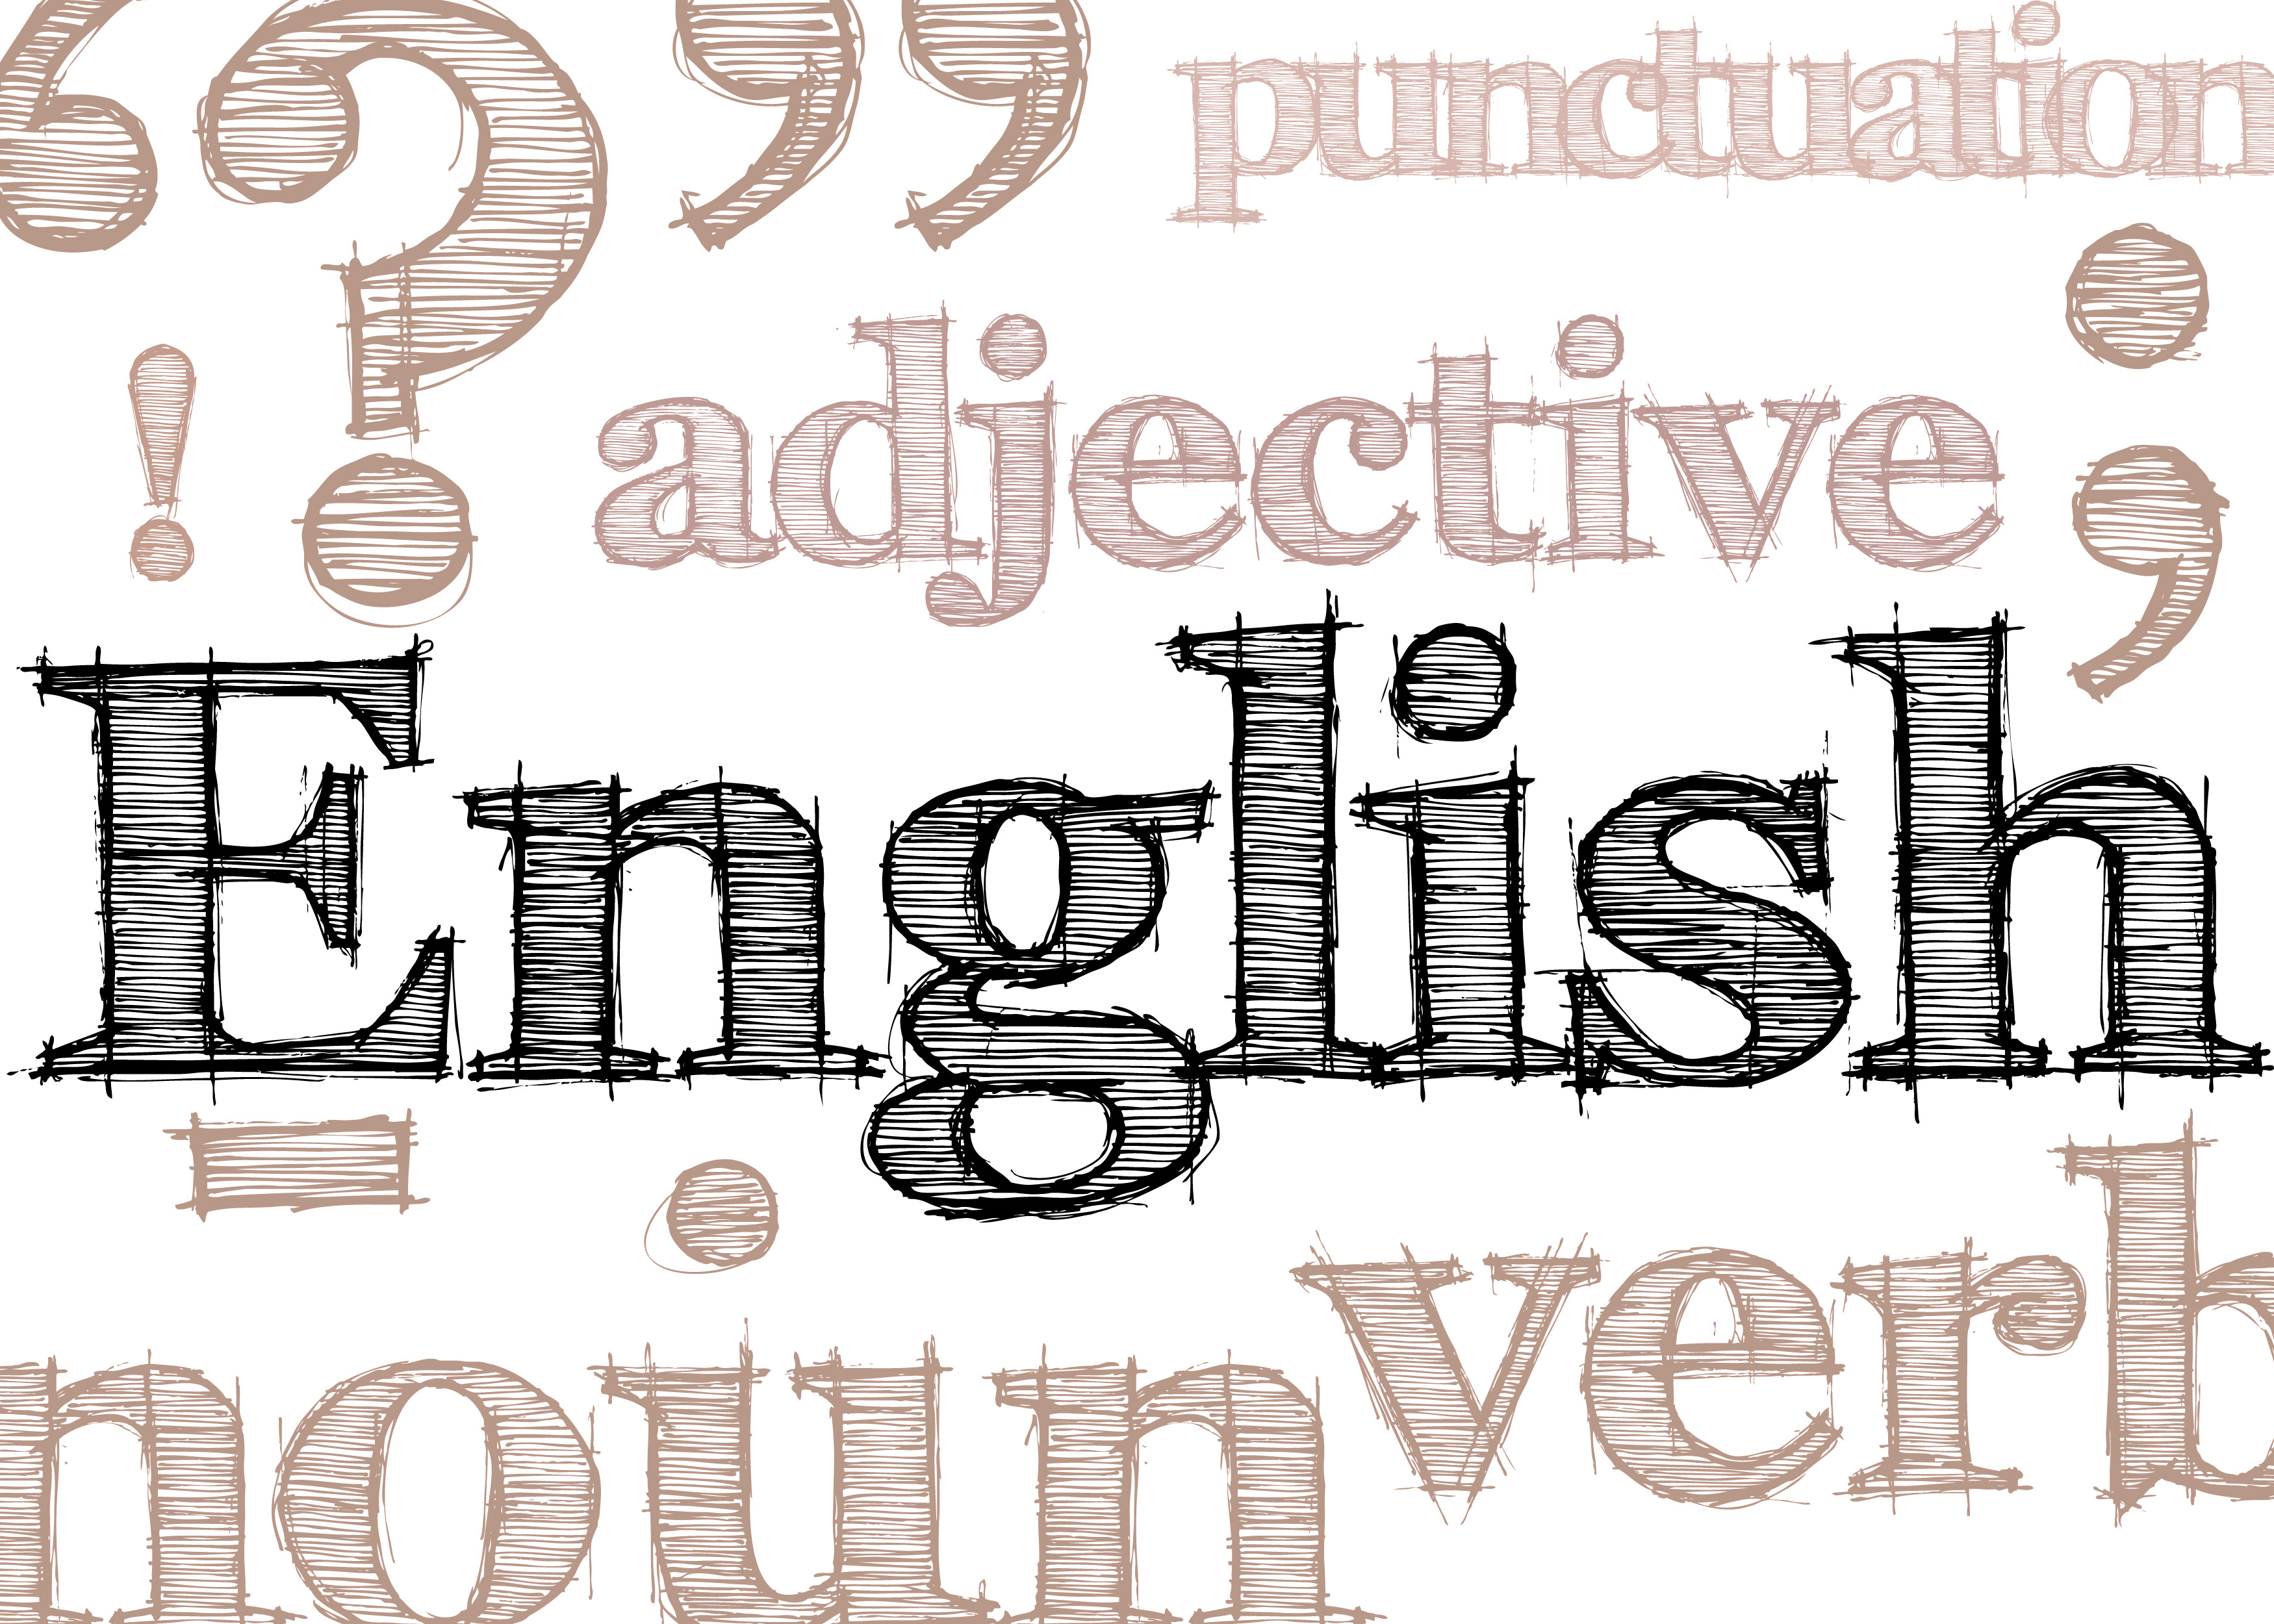 english writing skills for class 6 With this approach of writing smart answers, you will be just a step away   international mother language day: how focus on english could be  here are 6  tips that will show you clearly how to write cbse answers to get the best marks: 1   read: 9 tips to score 100 per cent in cbse class 12 maths exam.